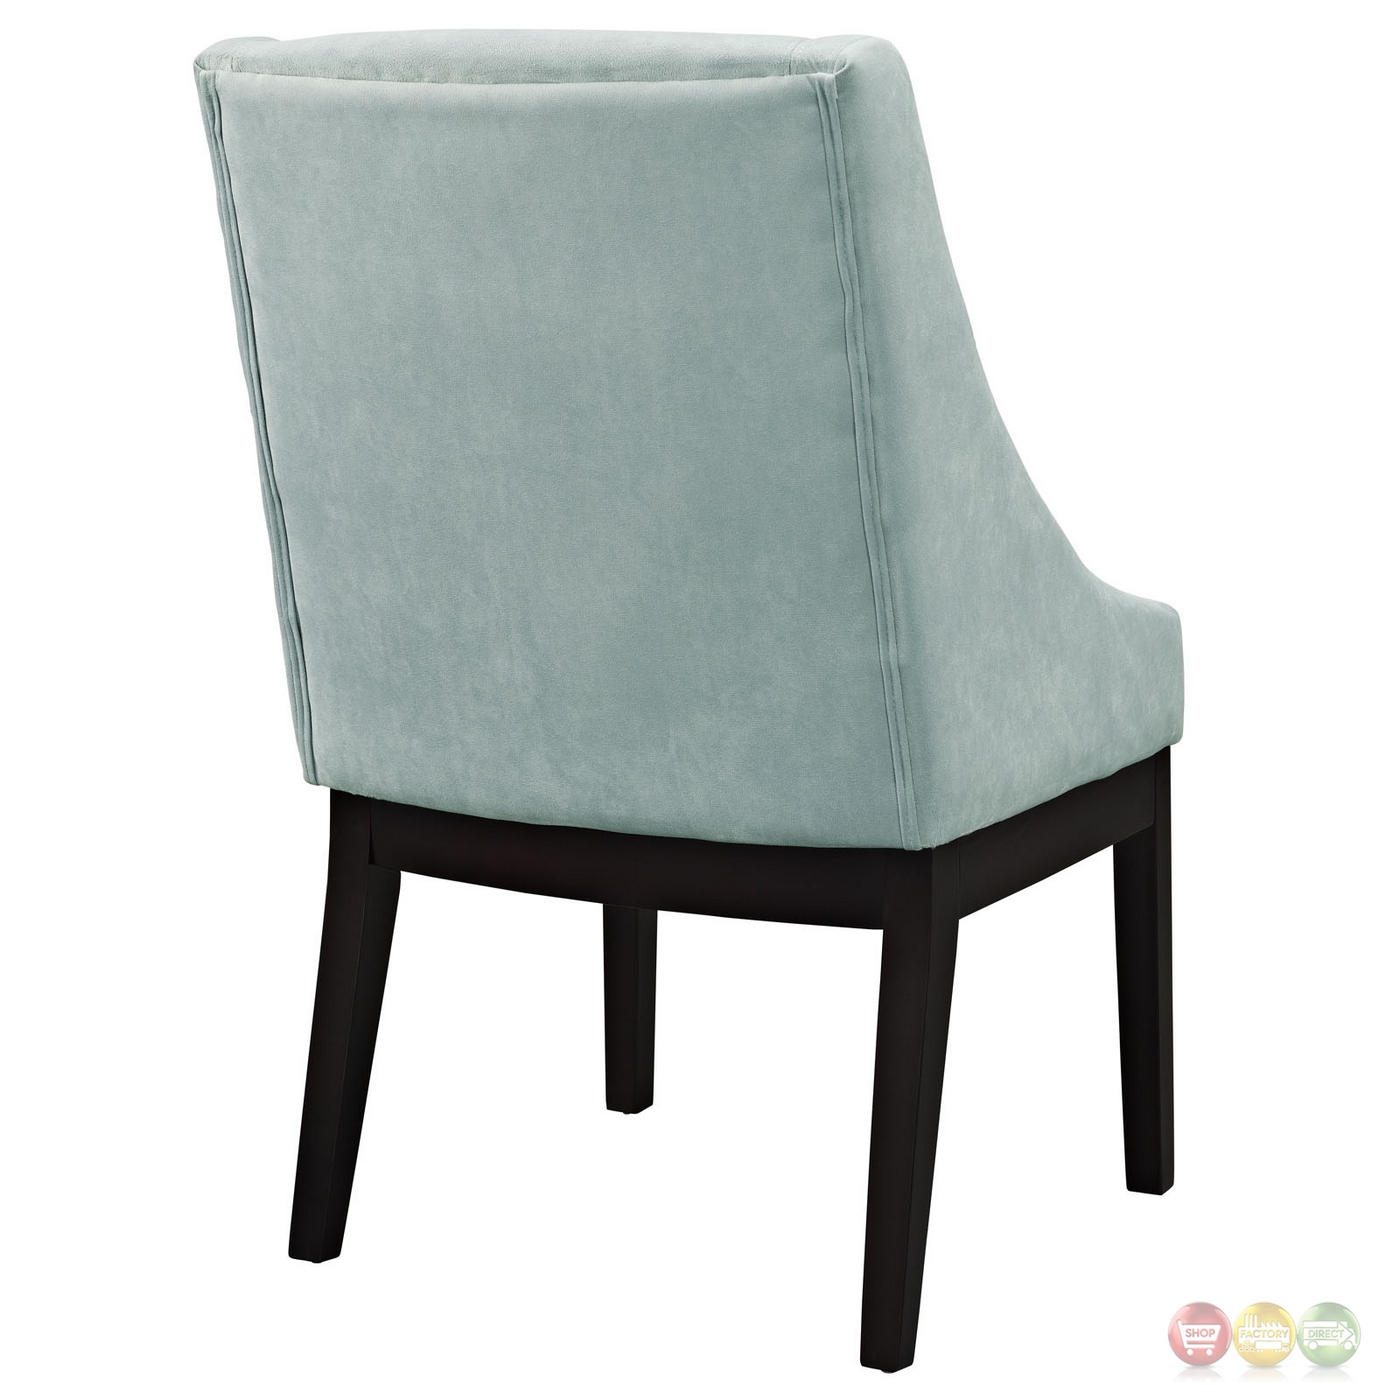 Wonderful image of  Suede like Upholstered Dining Side Chair w/ Wood Legs Light Blue with #A48627 color and 1400x1400 pixels